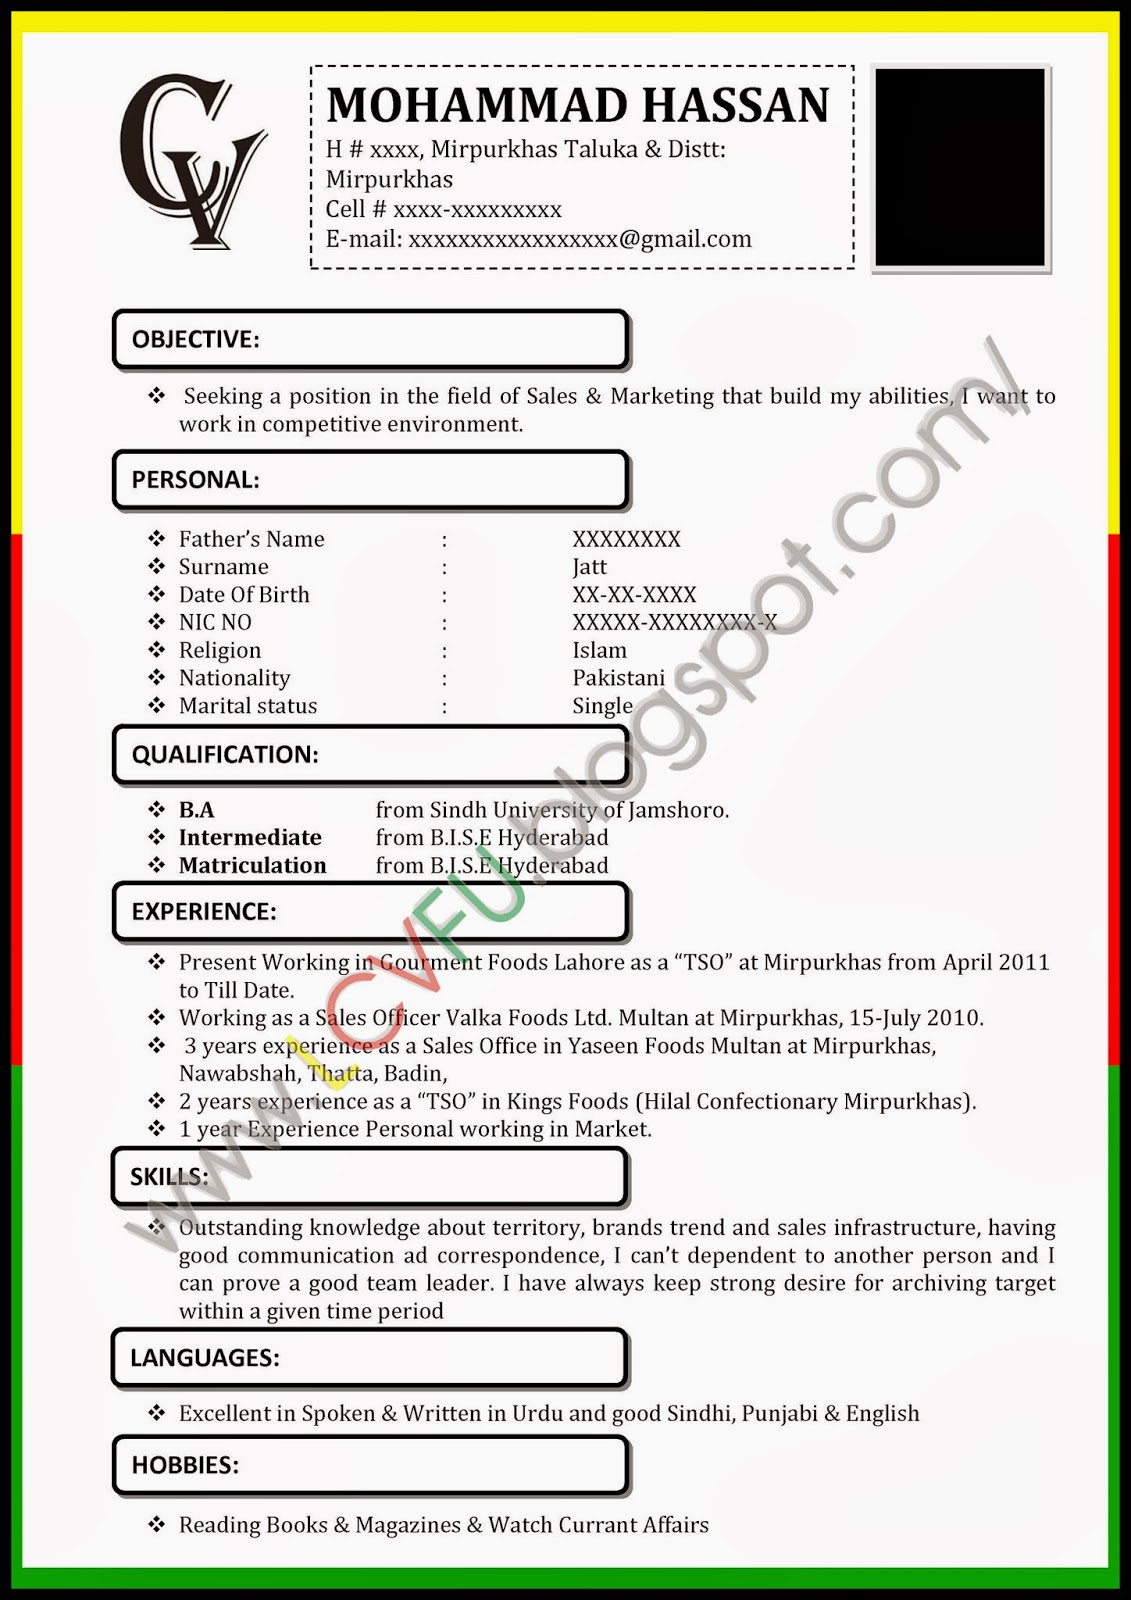 cv format government jobs resume writing resume examples cover cv format government jobs cvtips resumes cv writing cv samples and cover word cv format latest